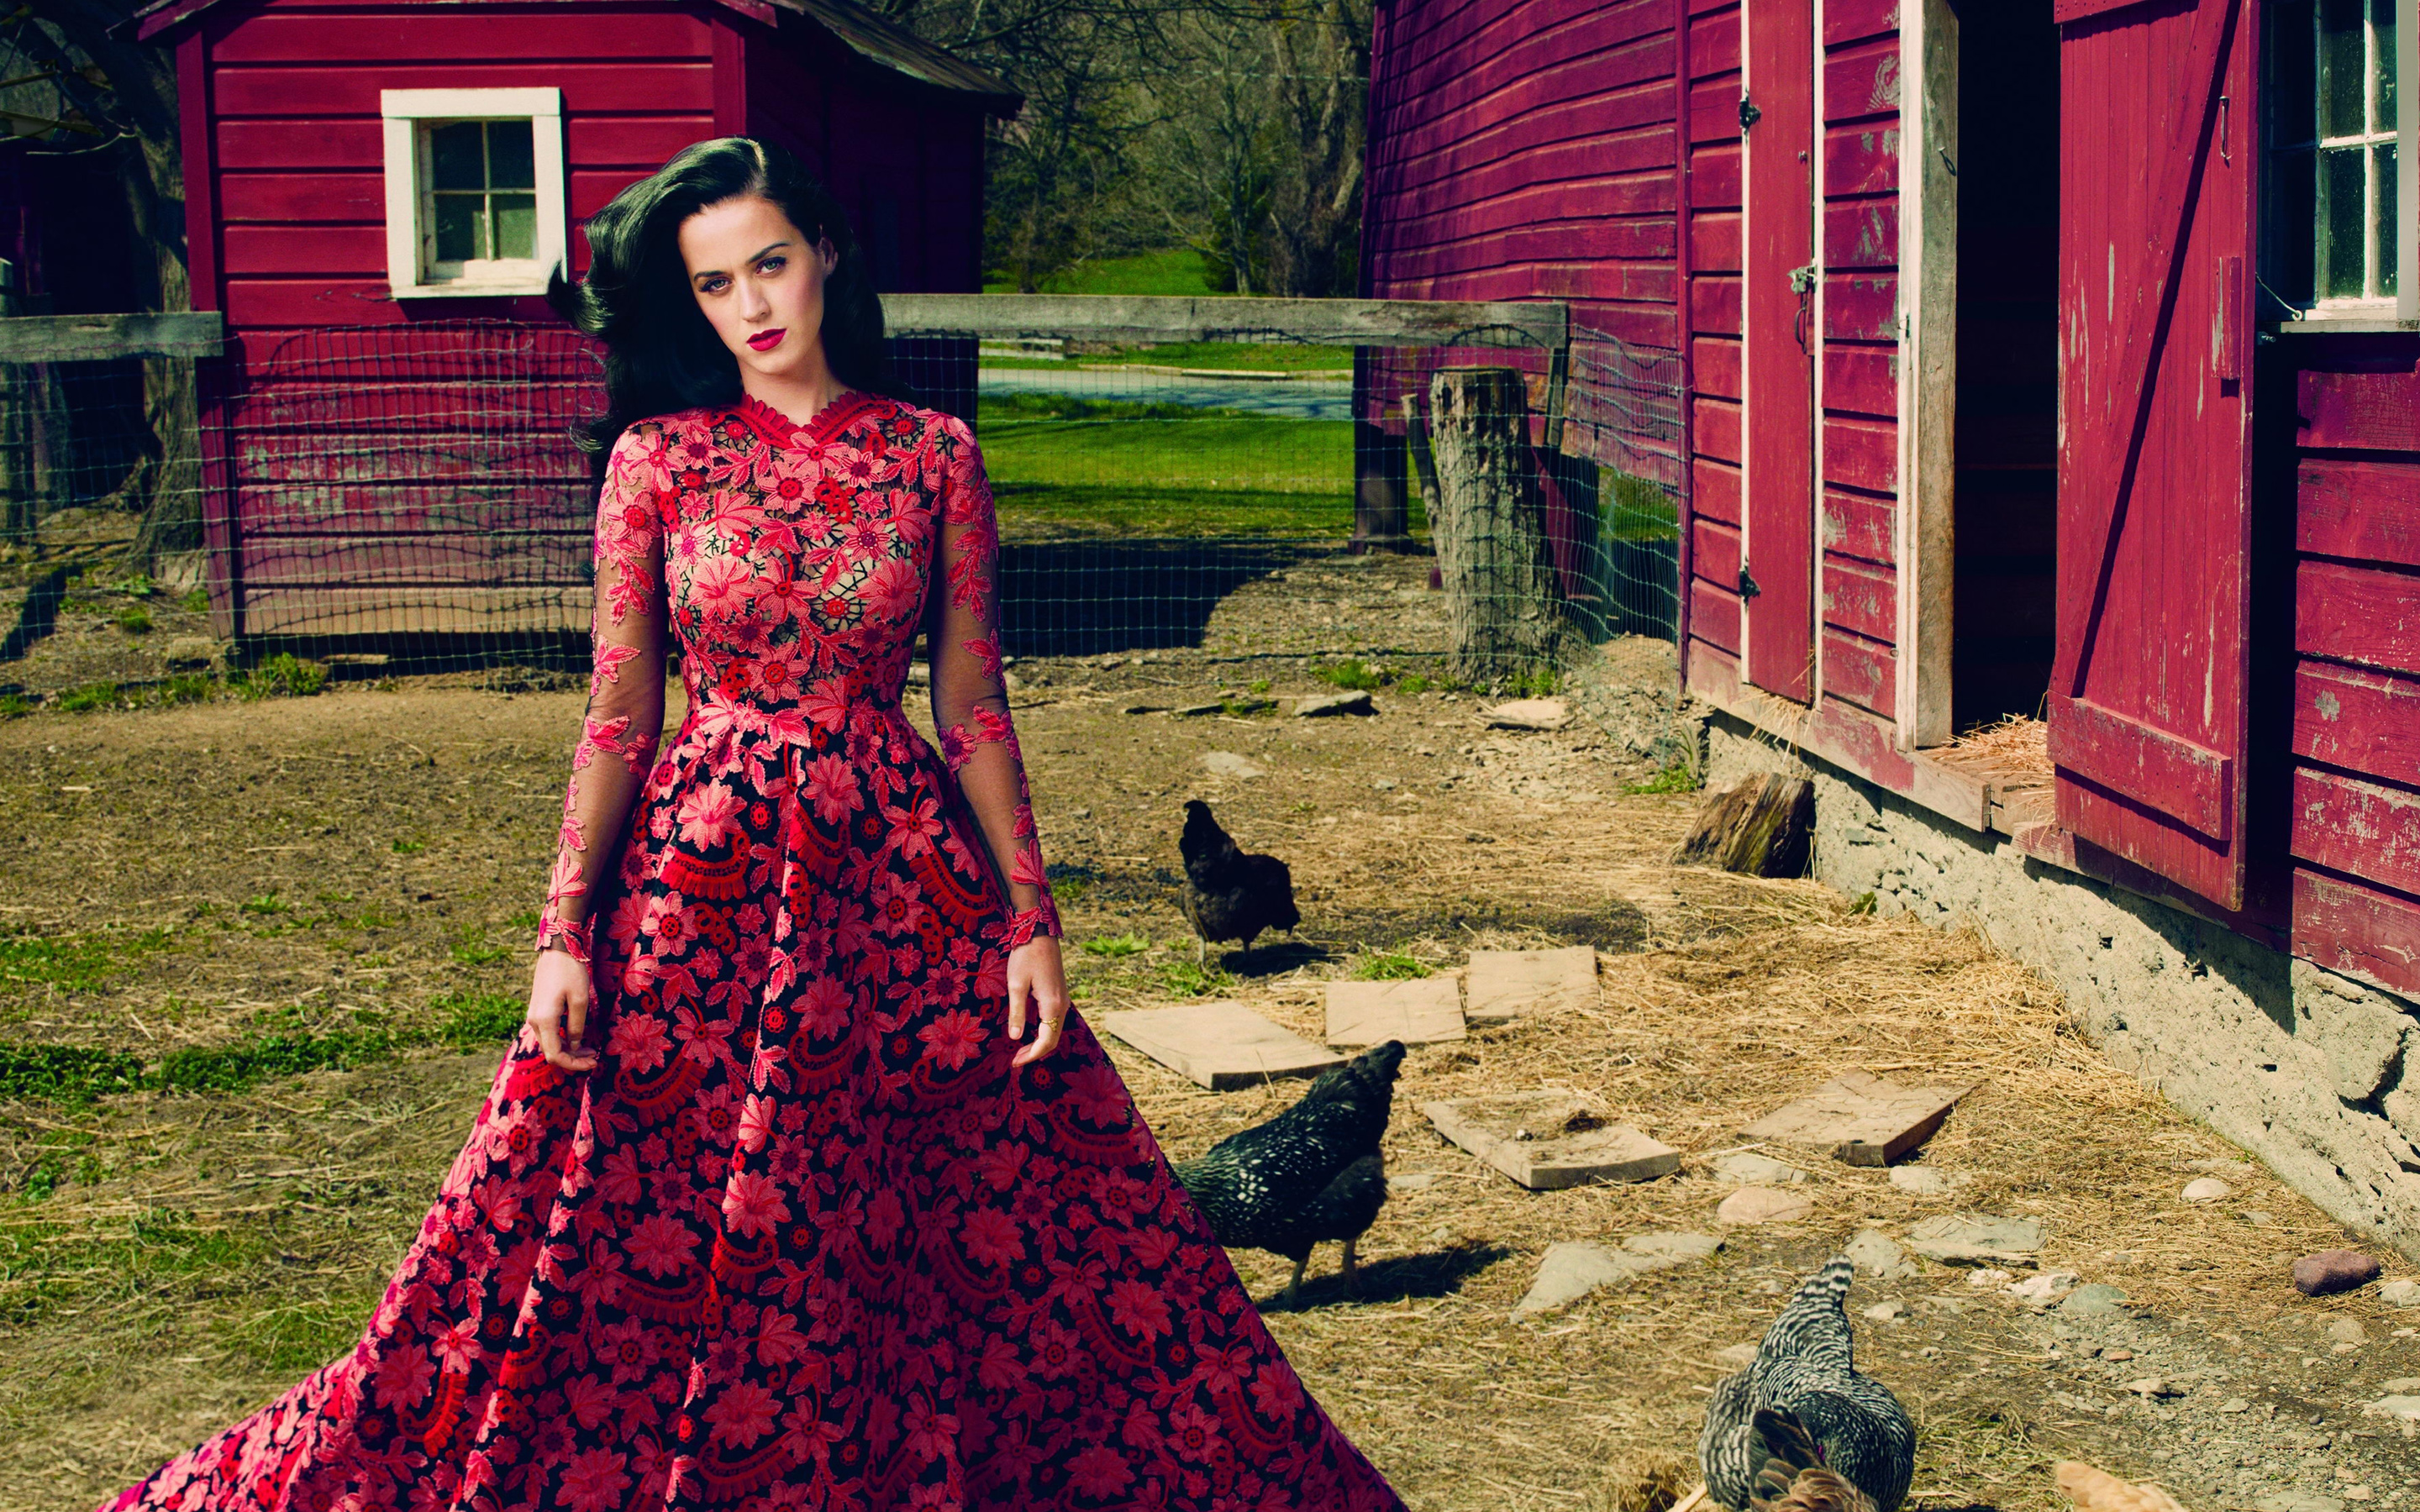 Katy Perry Hd Wallpaper Background Image 2880x1800 Id